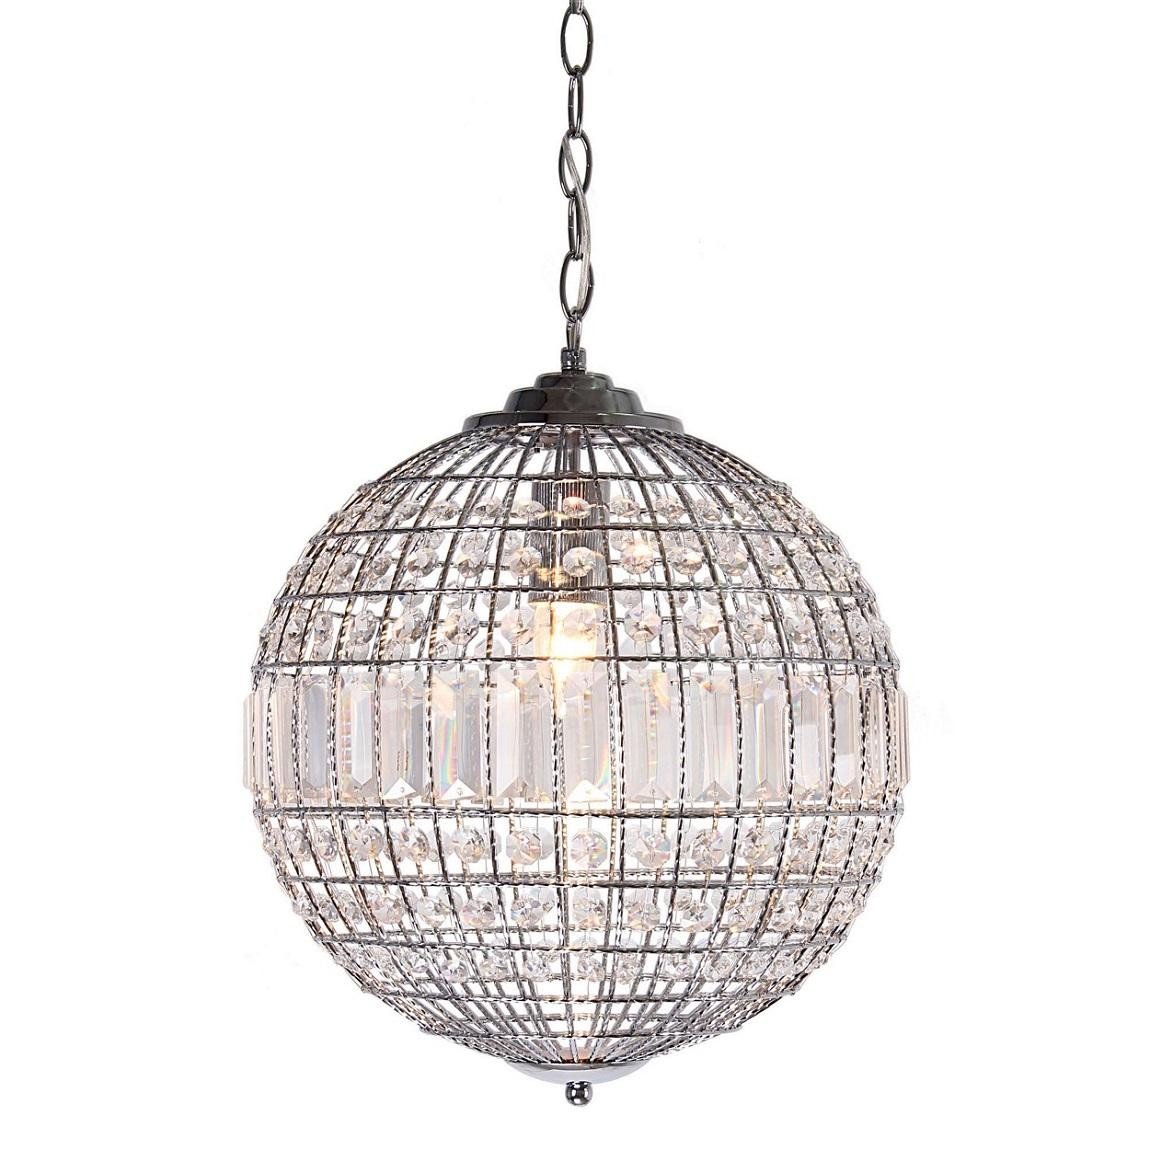 Small-Isabella-Pendant-Ceiling-Light.jpg